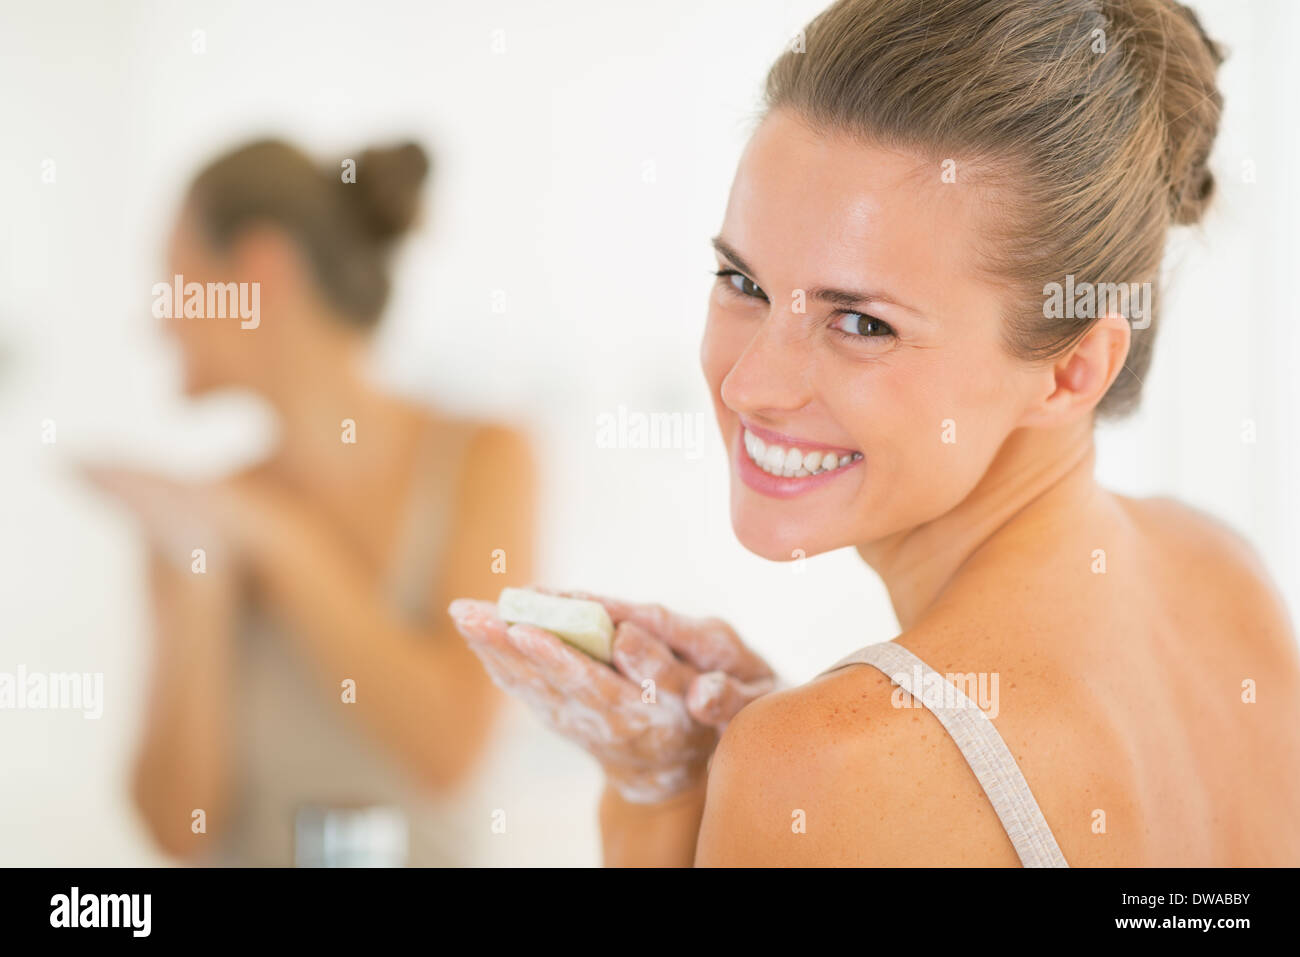 Portrait of smiling young woman washing hands with soap - Stock Image